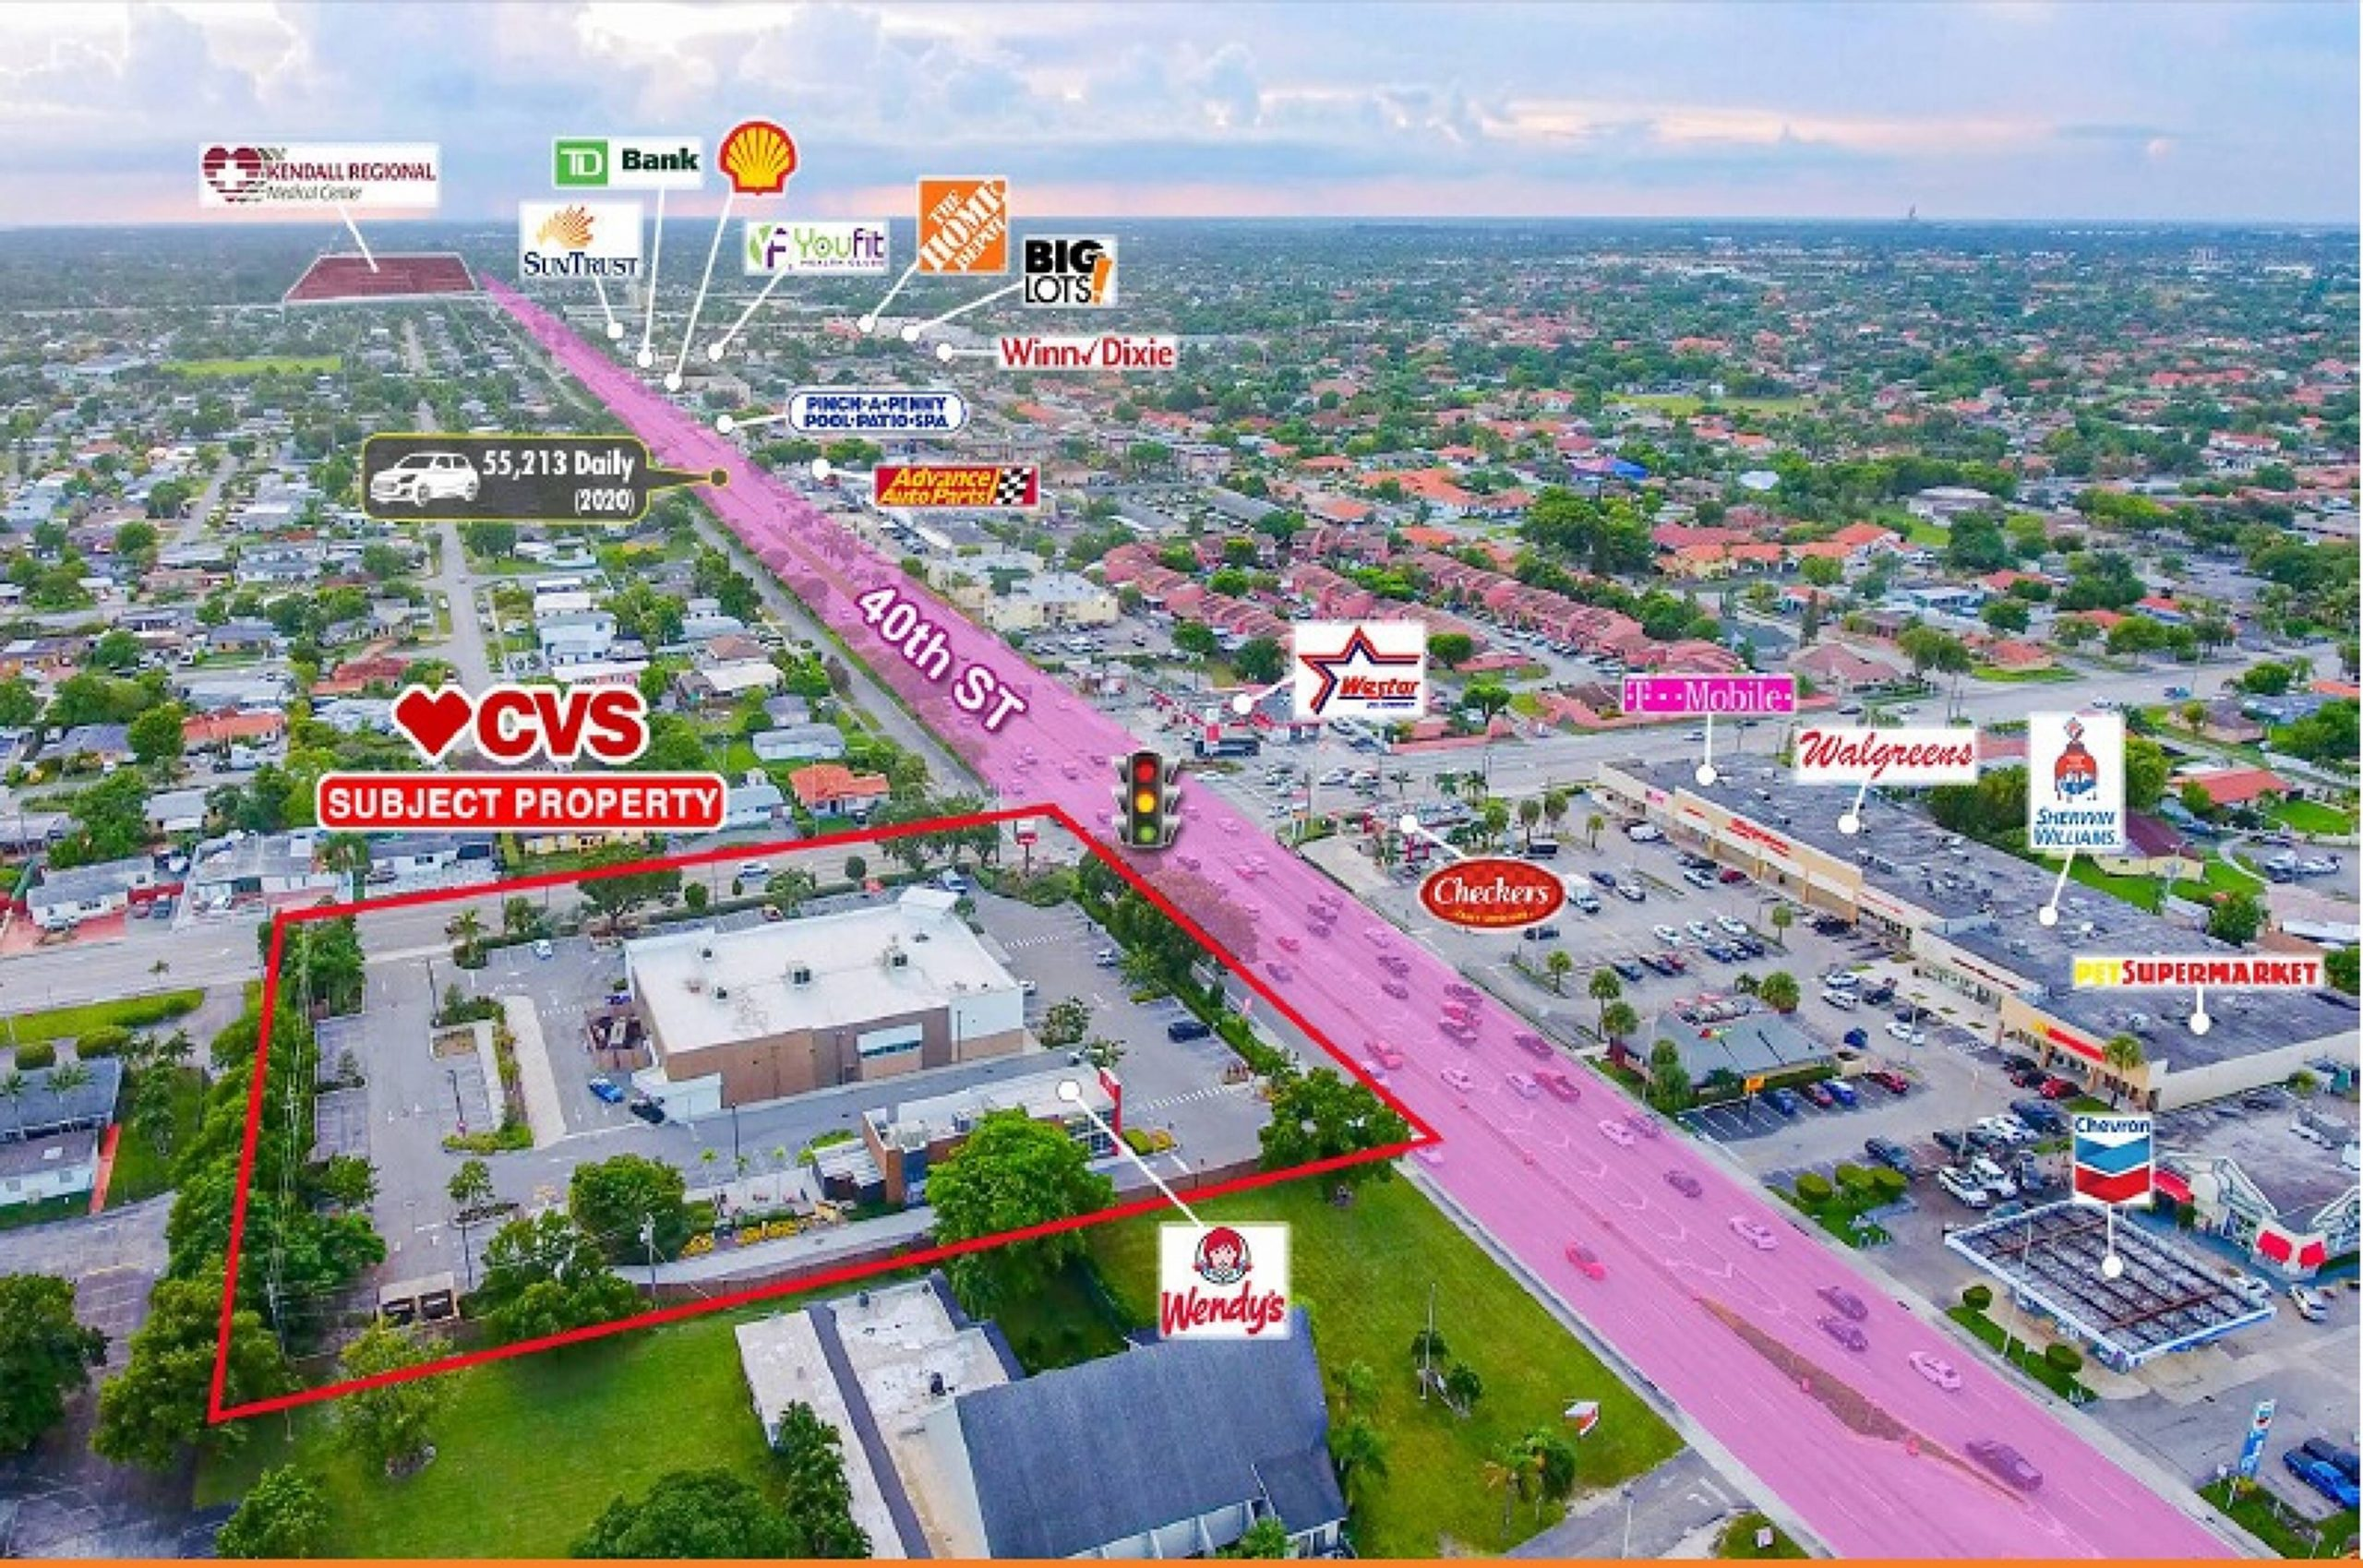 CVS NNN Property for Sale Miami Aerial Photo